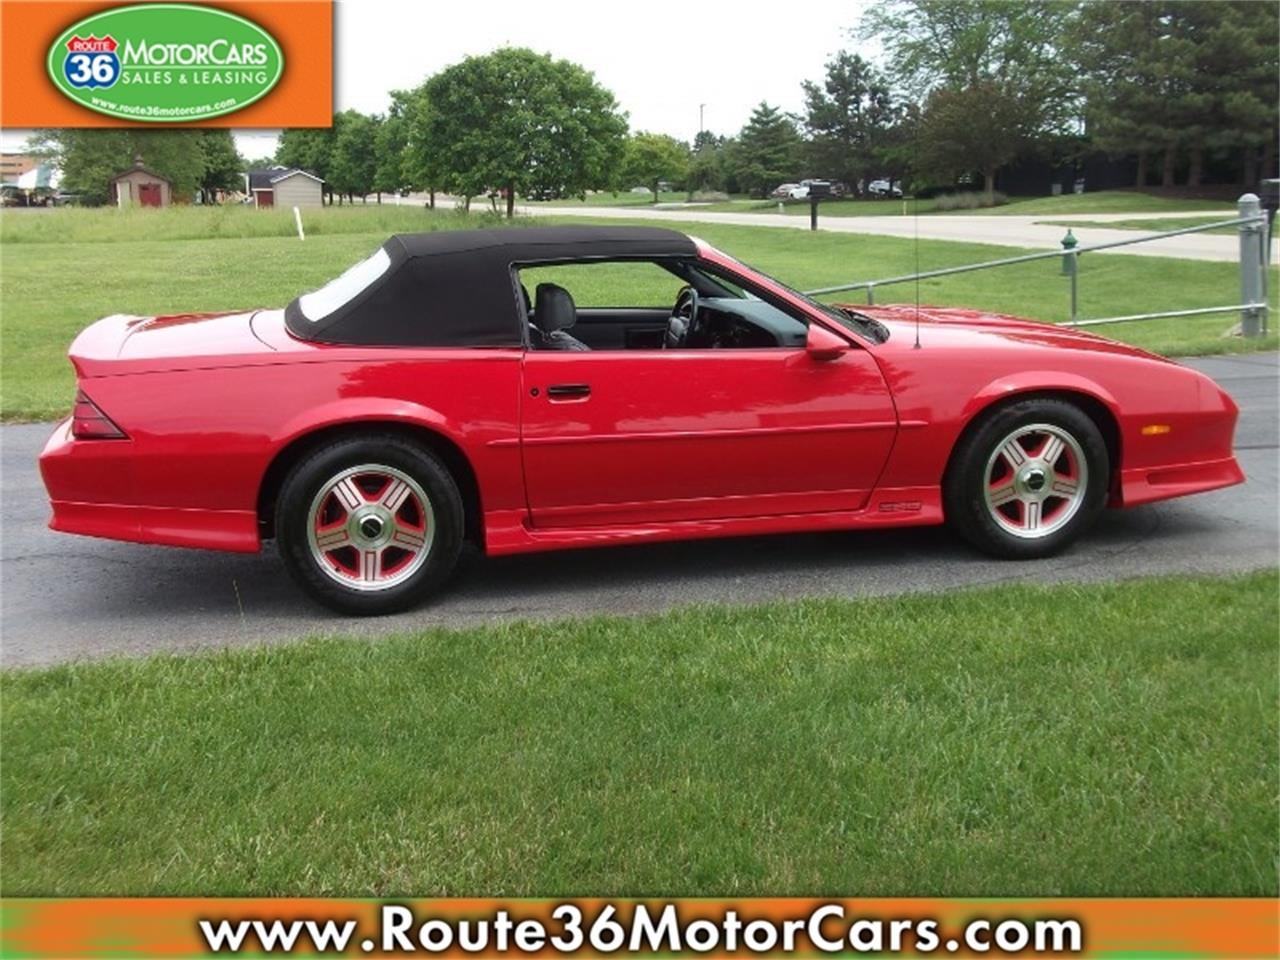 Large Picture of '91 Camaro located in Ohio Offered by Route 36 Motor Cars - L80O